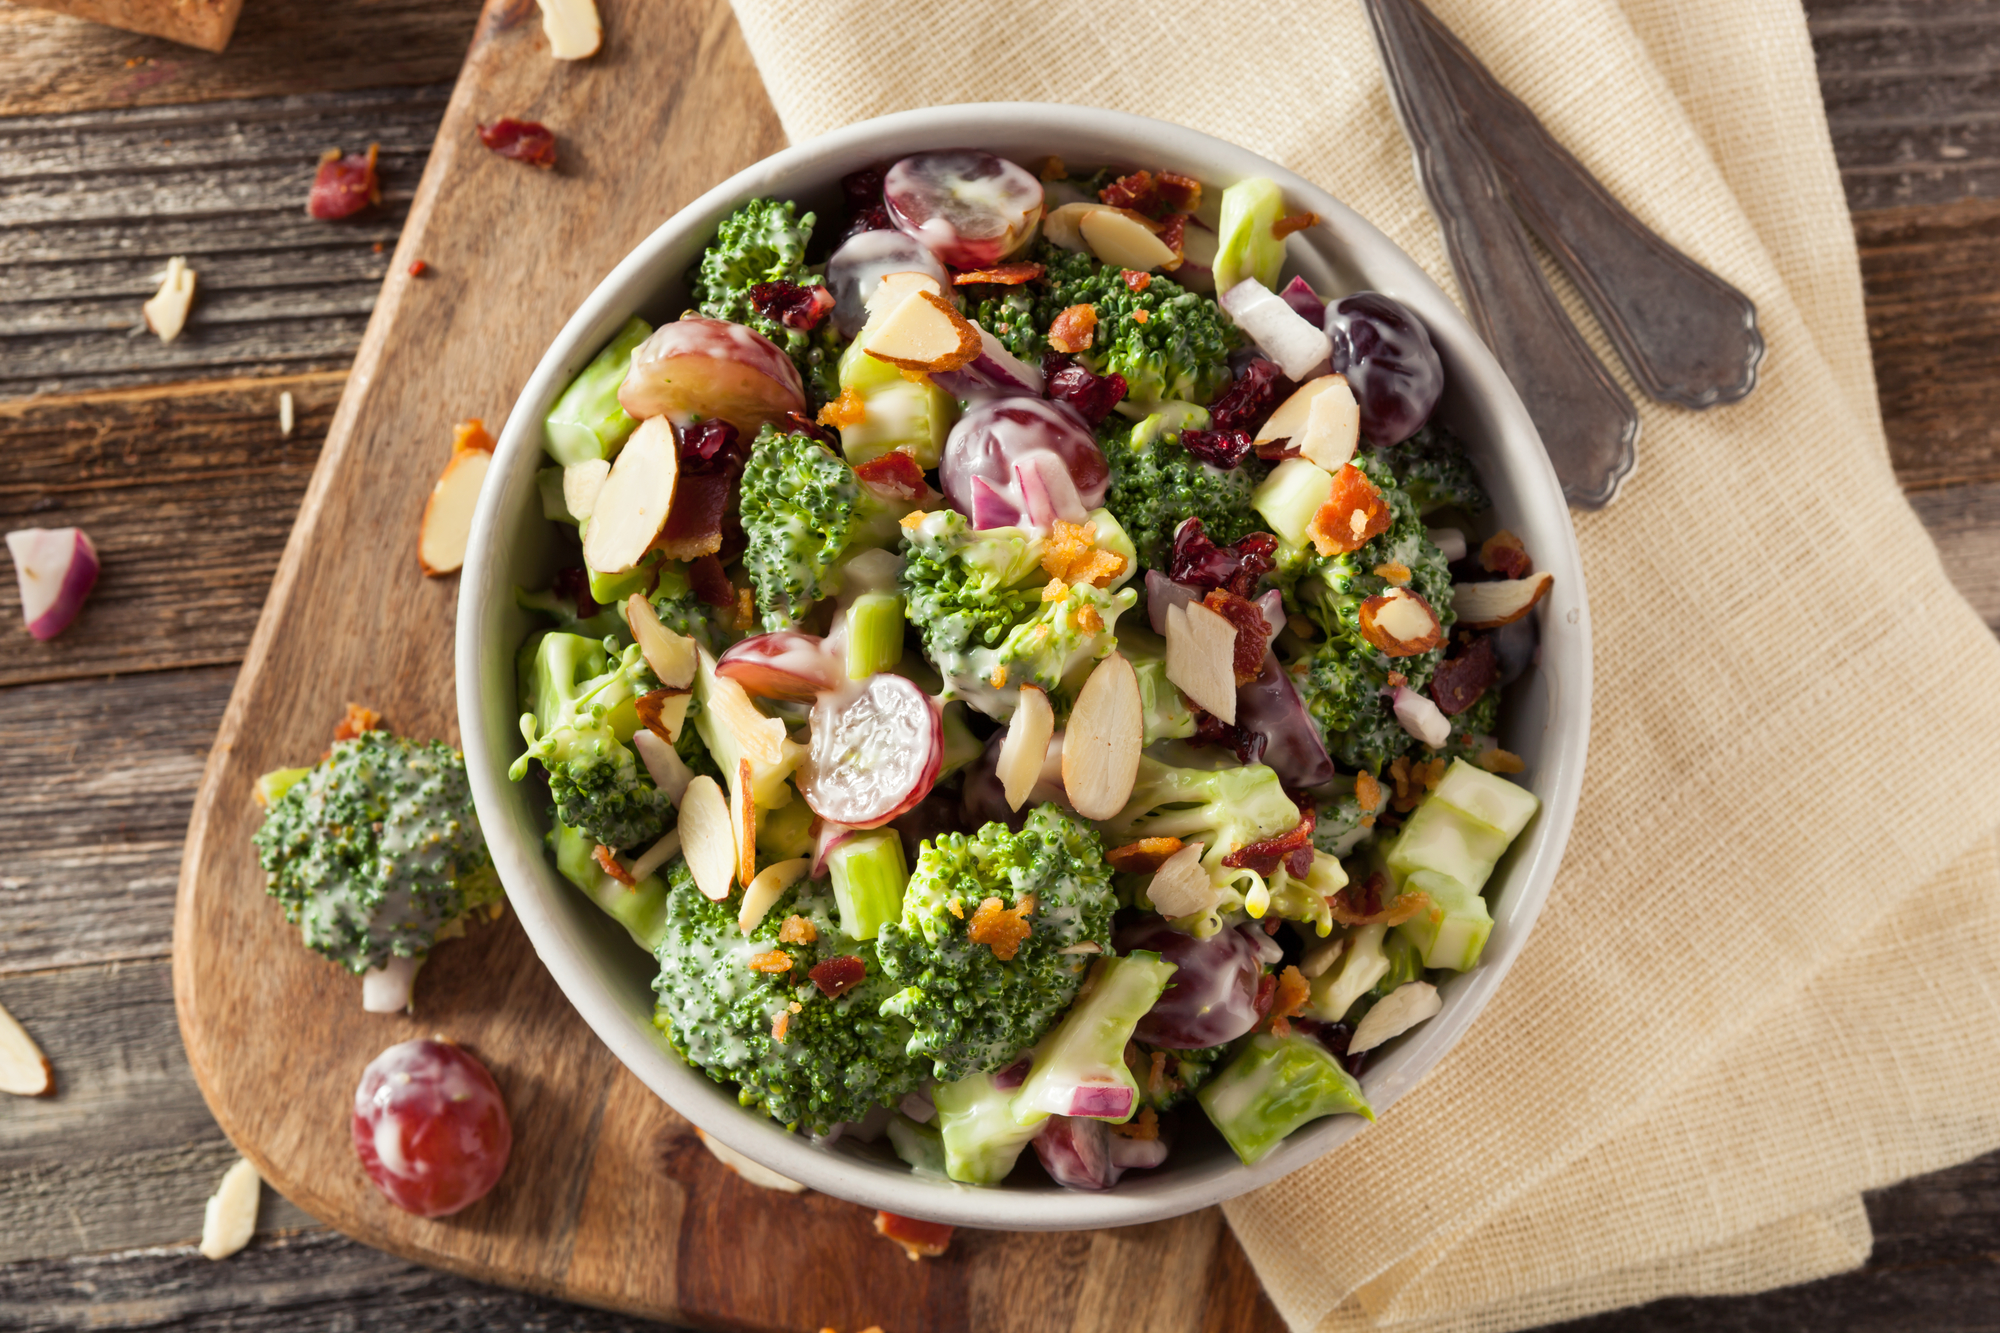 Homemade Green Broccoli Salad with Grapes Onion and Bacon